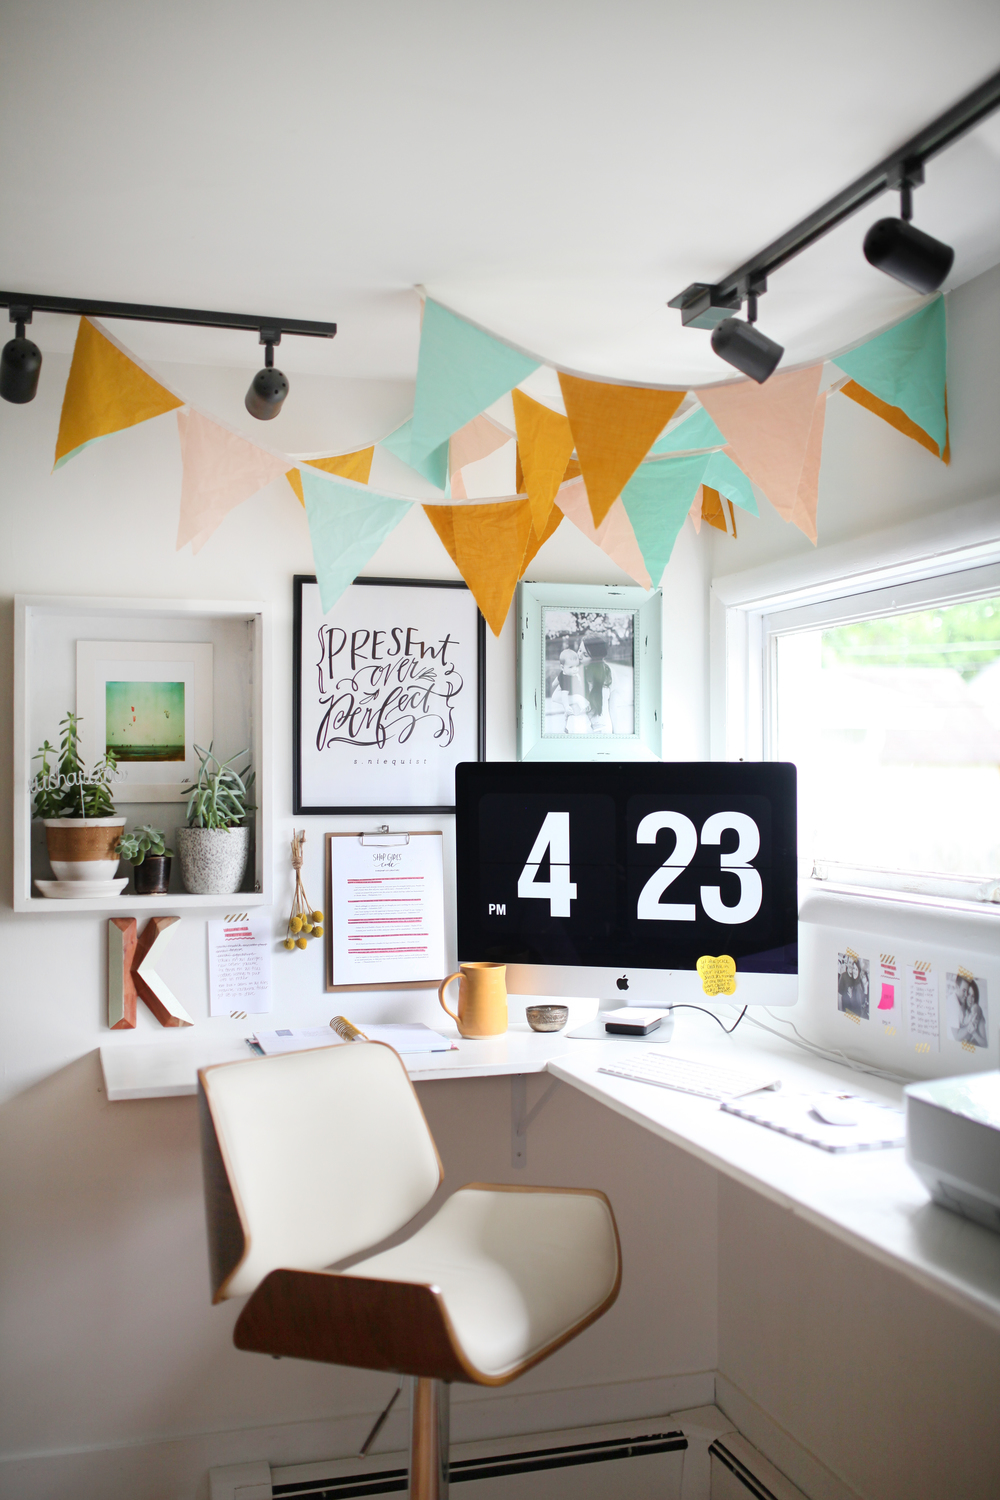 Wall Decorations For Office 7 fun office wall decor ideas httpblogofficezillacom Home Office Ideas Creative Office Space Present Over Perfect Wall Decor Wall